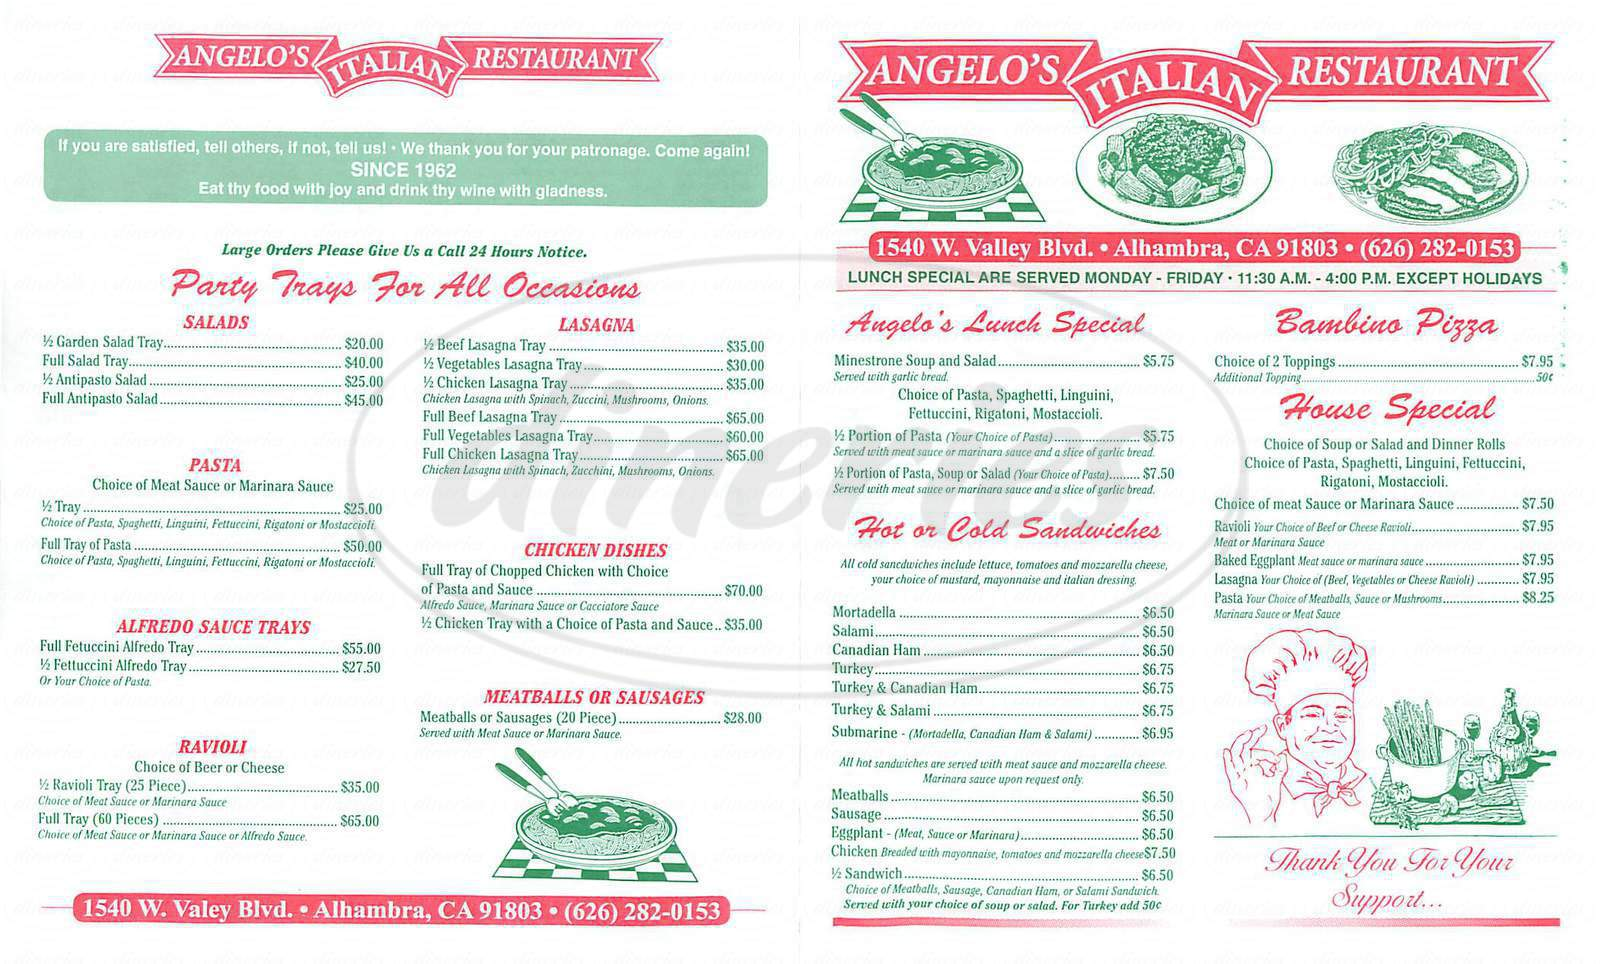 Big menu for Angelo's Italian Restaurant, Alhambra